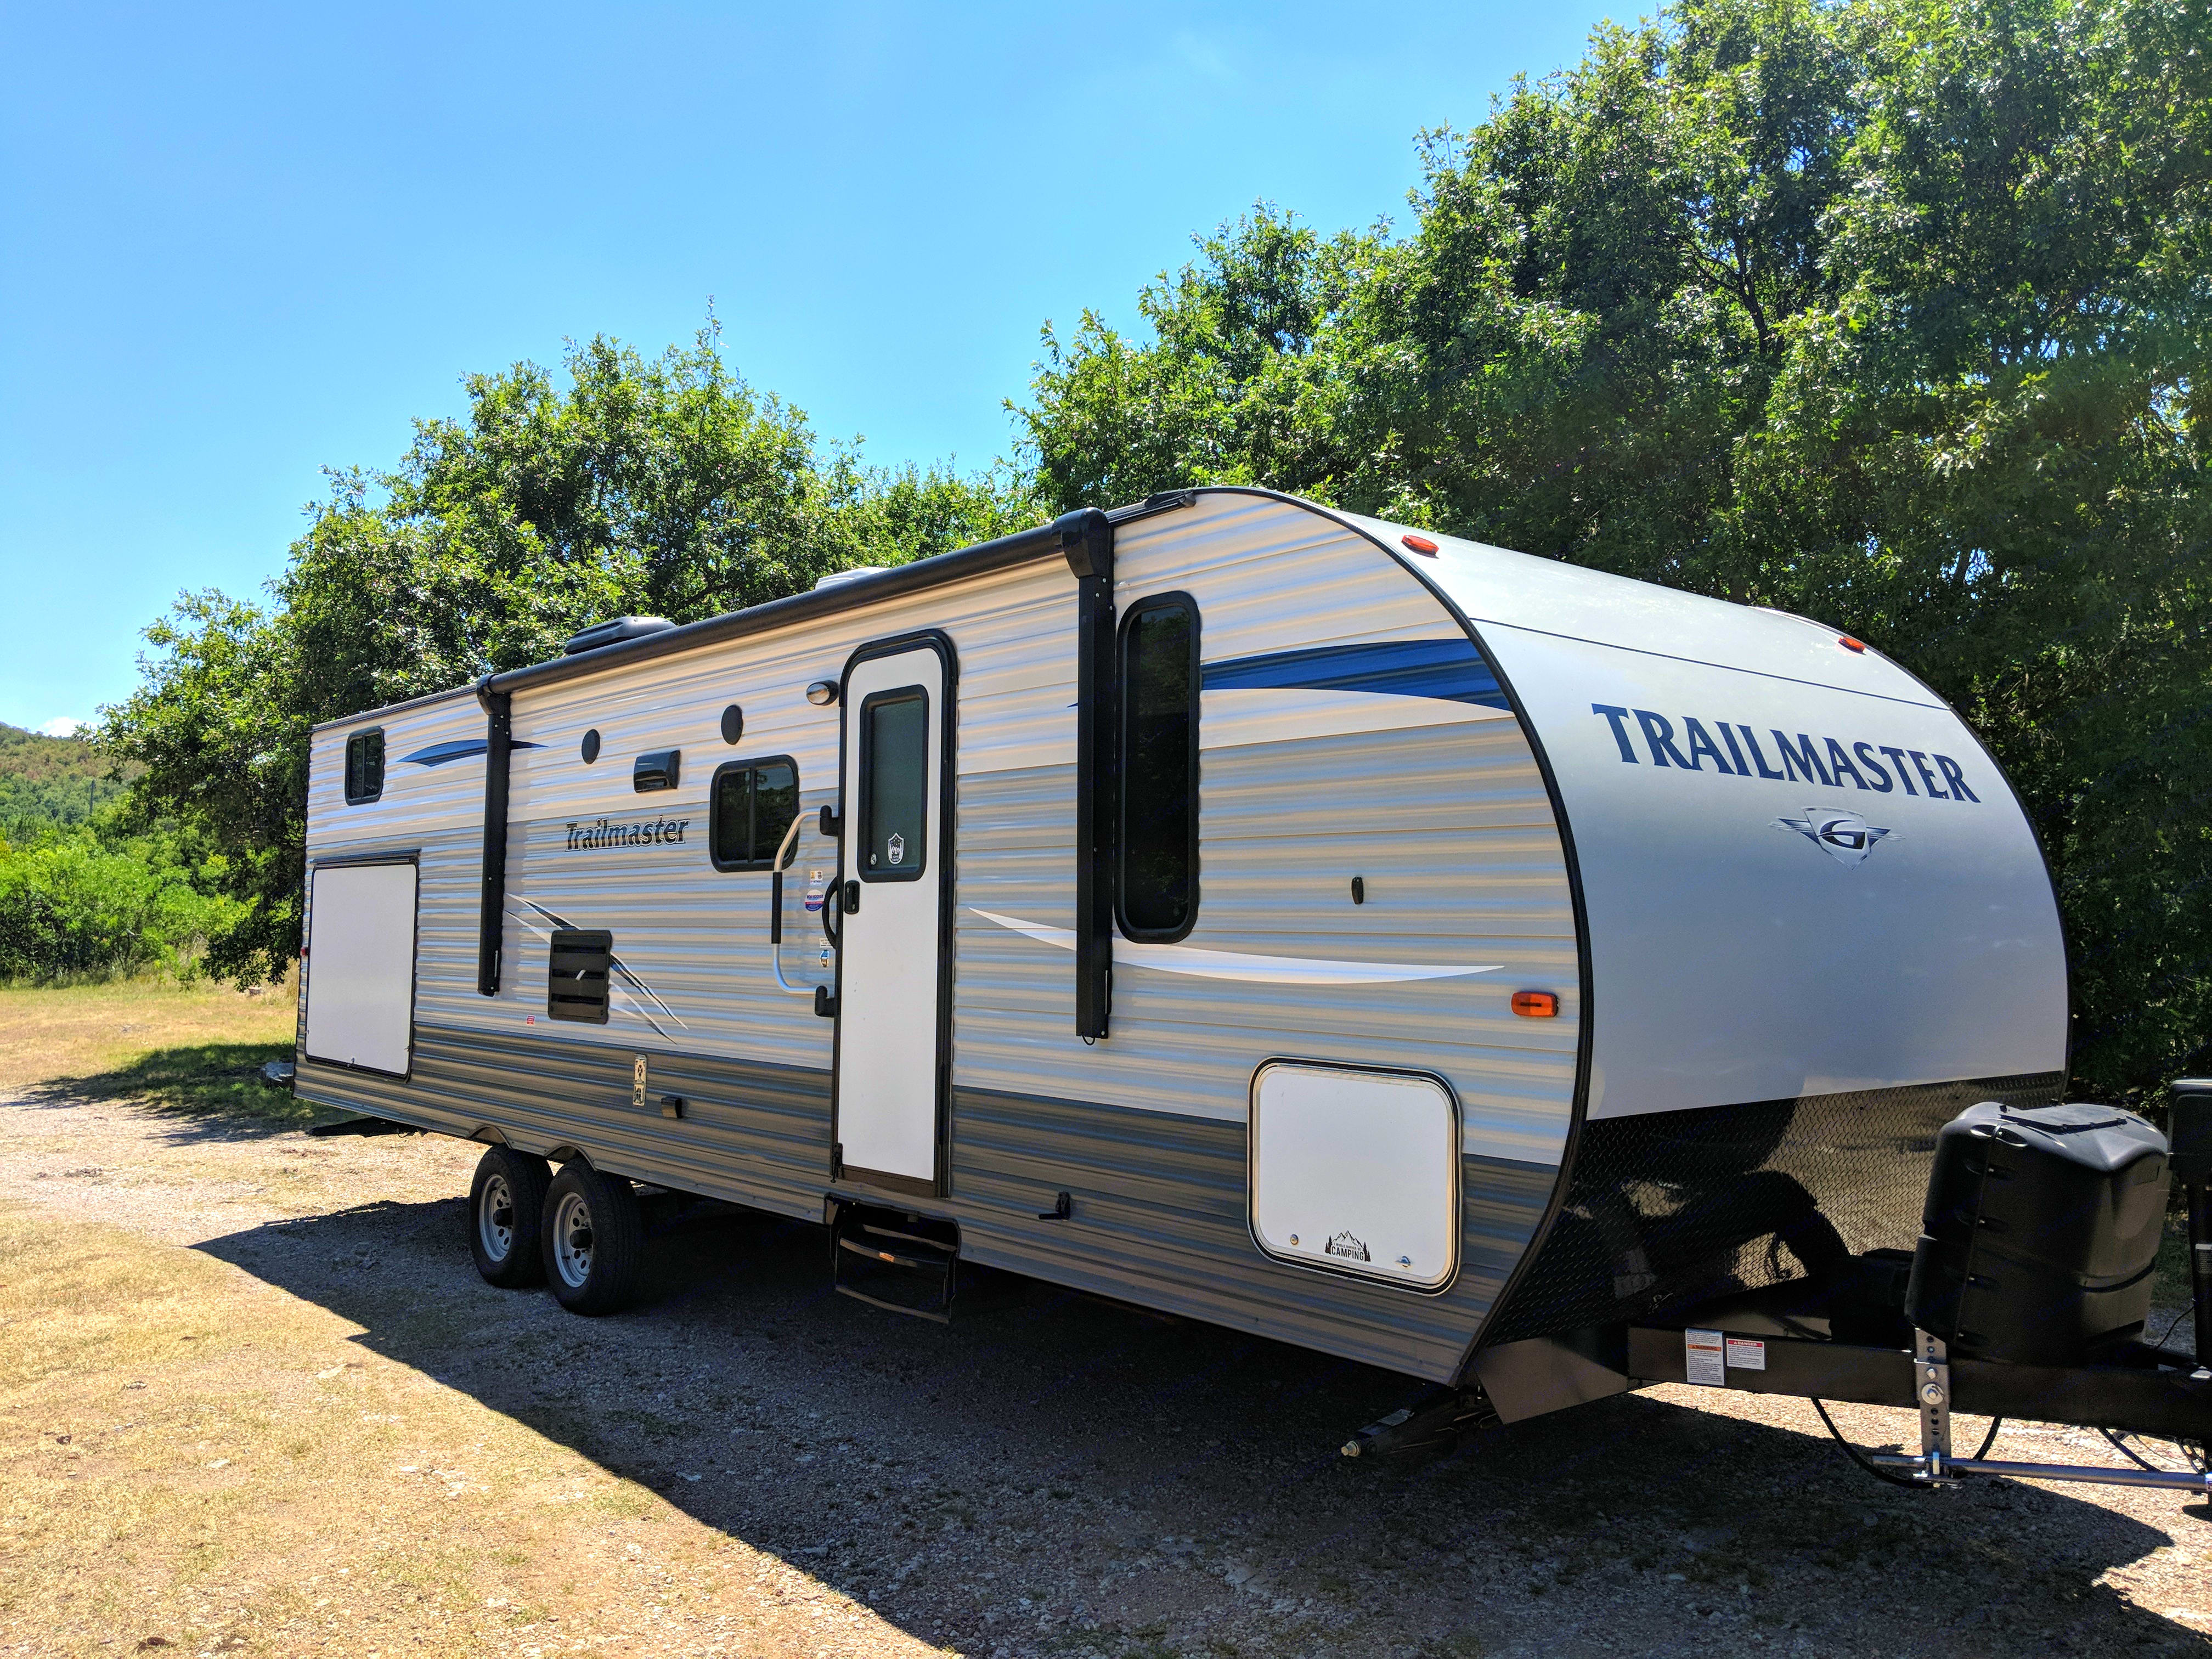 lots of useful amenities including electric awning, outdoor lighting, outdoor kitchen, plenty of storage (inside and outside), large slide out, and a lot more that will make any trip user friendly and enjoyable.. Gulf Stream Trailmaster 2018